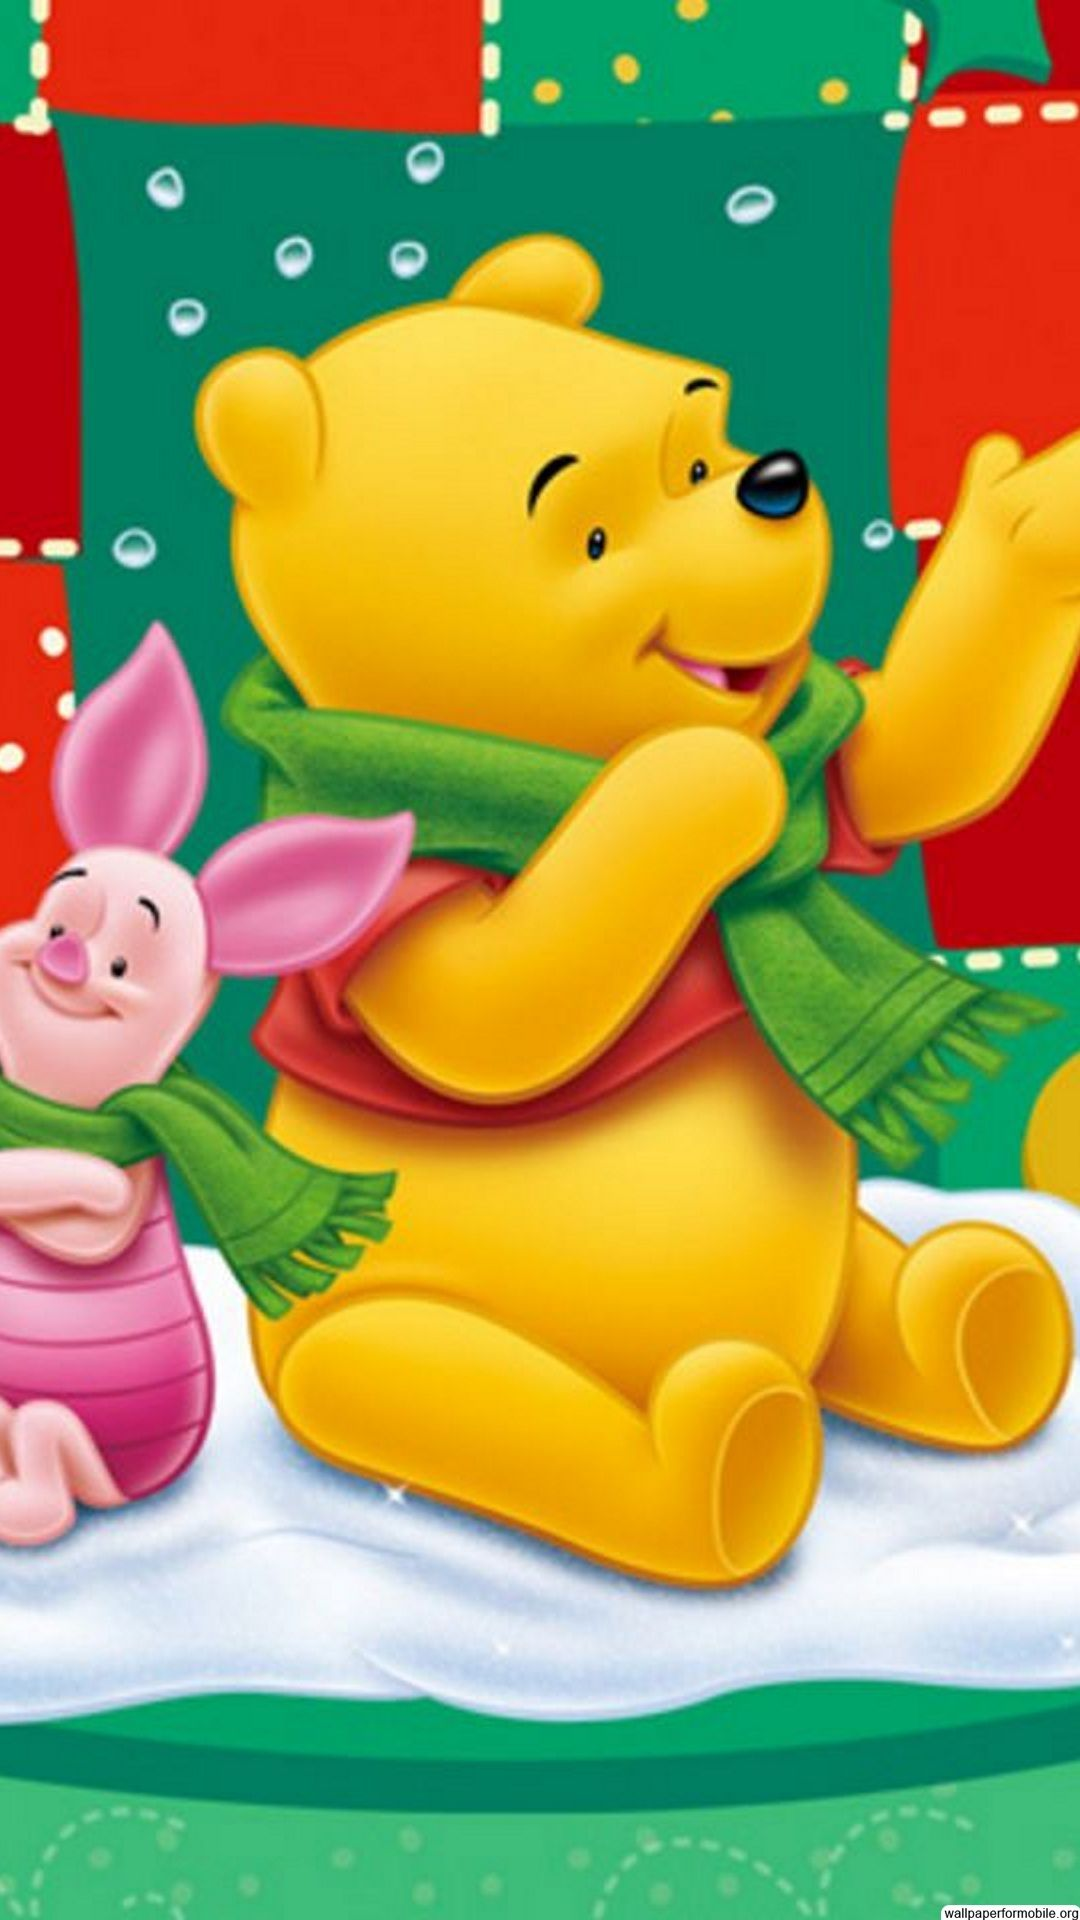 Free Winnie The Pooh Hd Image Download High Resolution Intended